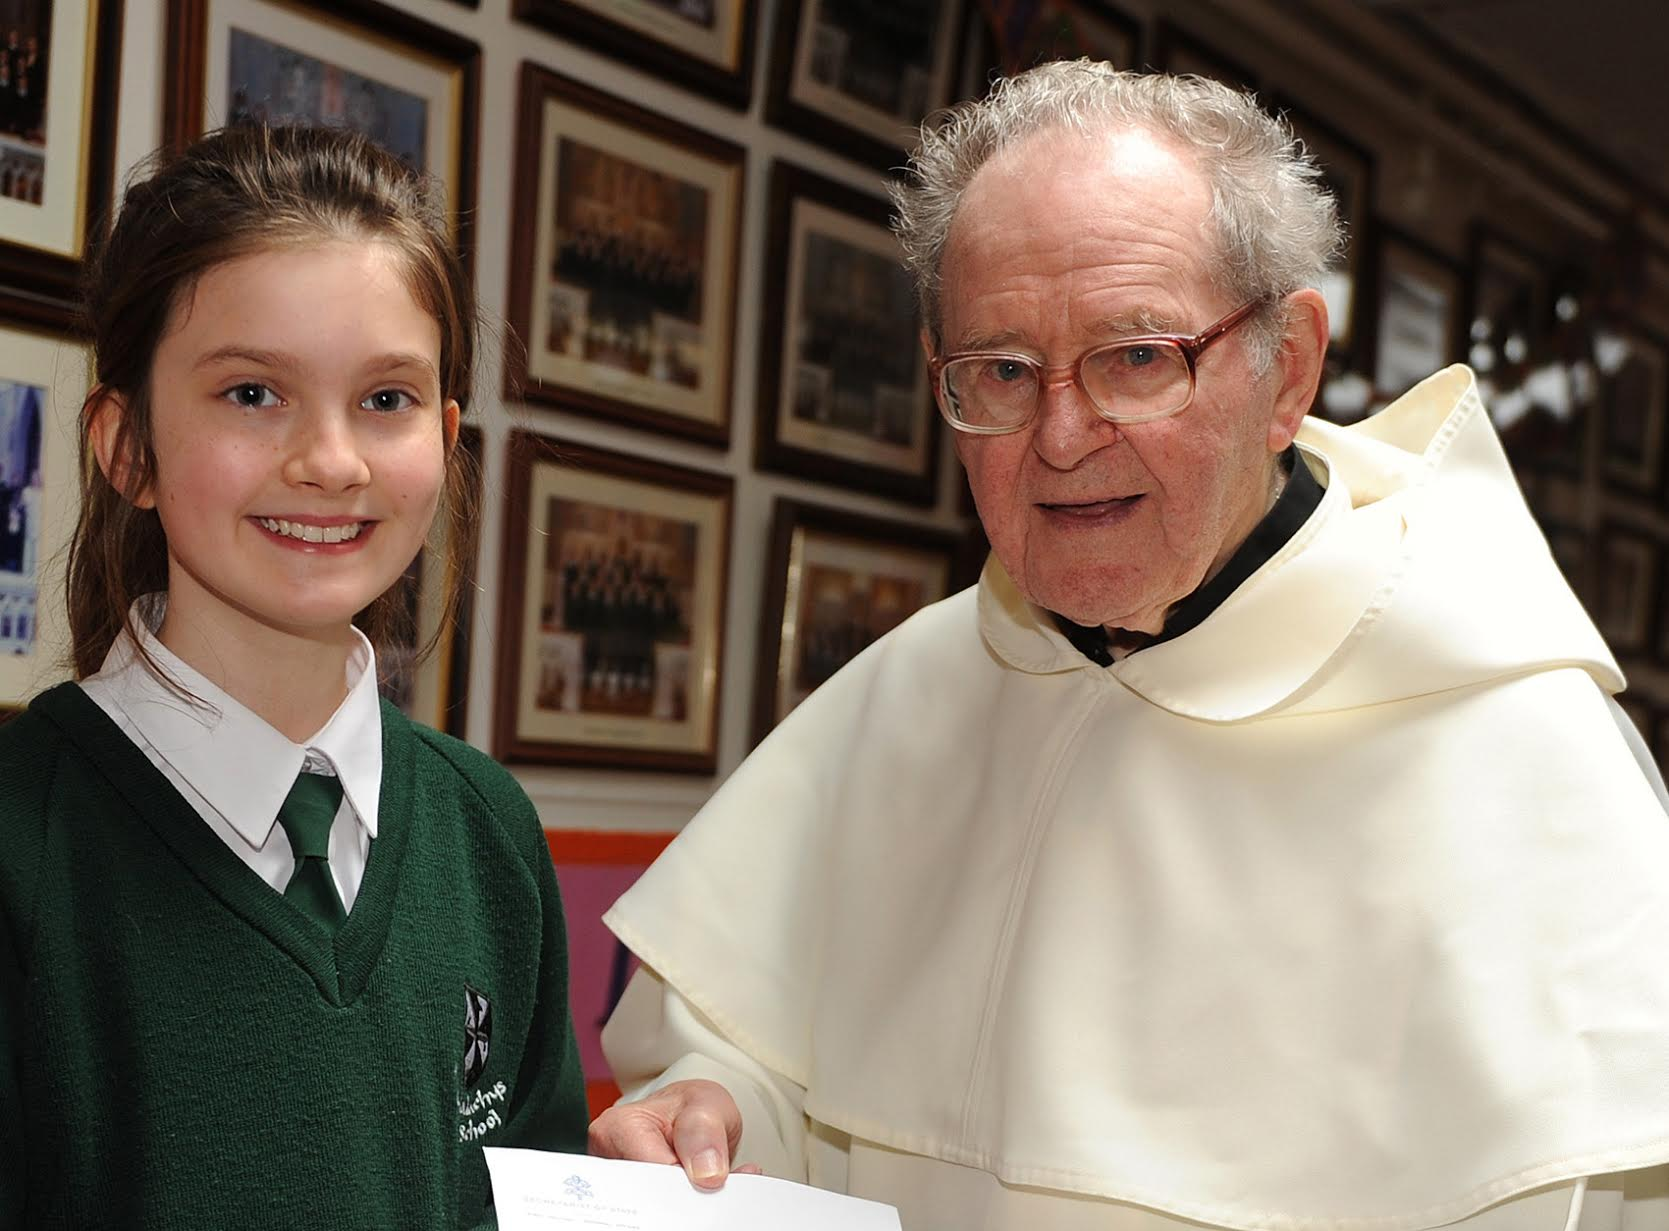 6th class pupil, Ruth McGee and Fr. Gabriel Harty OP in St. Malachy's Girls' National School.